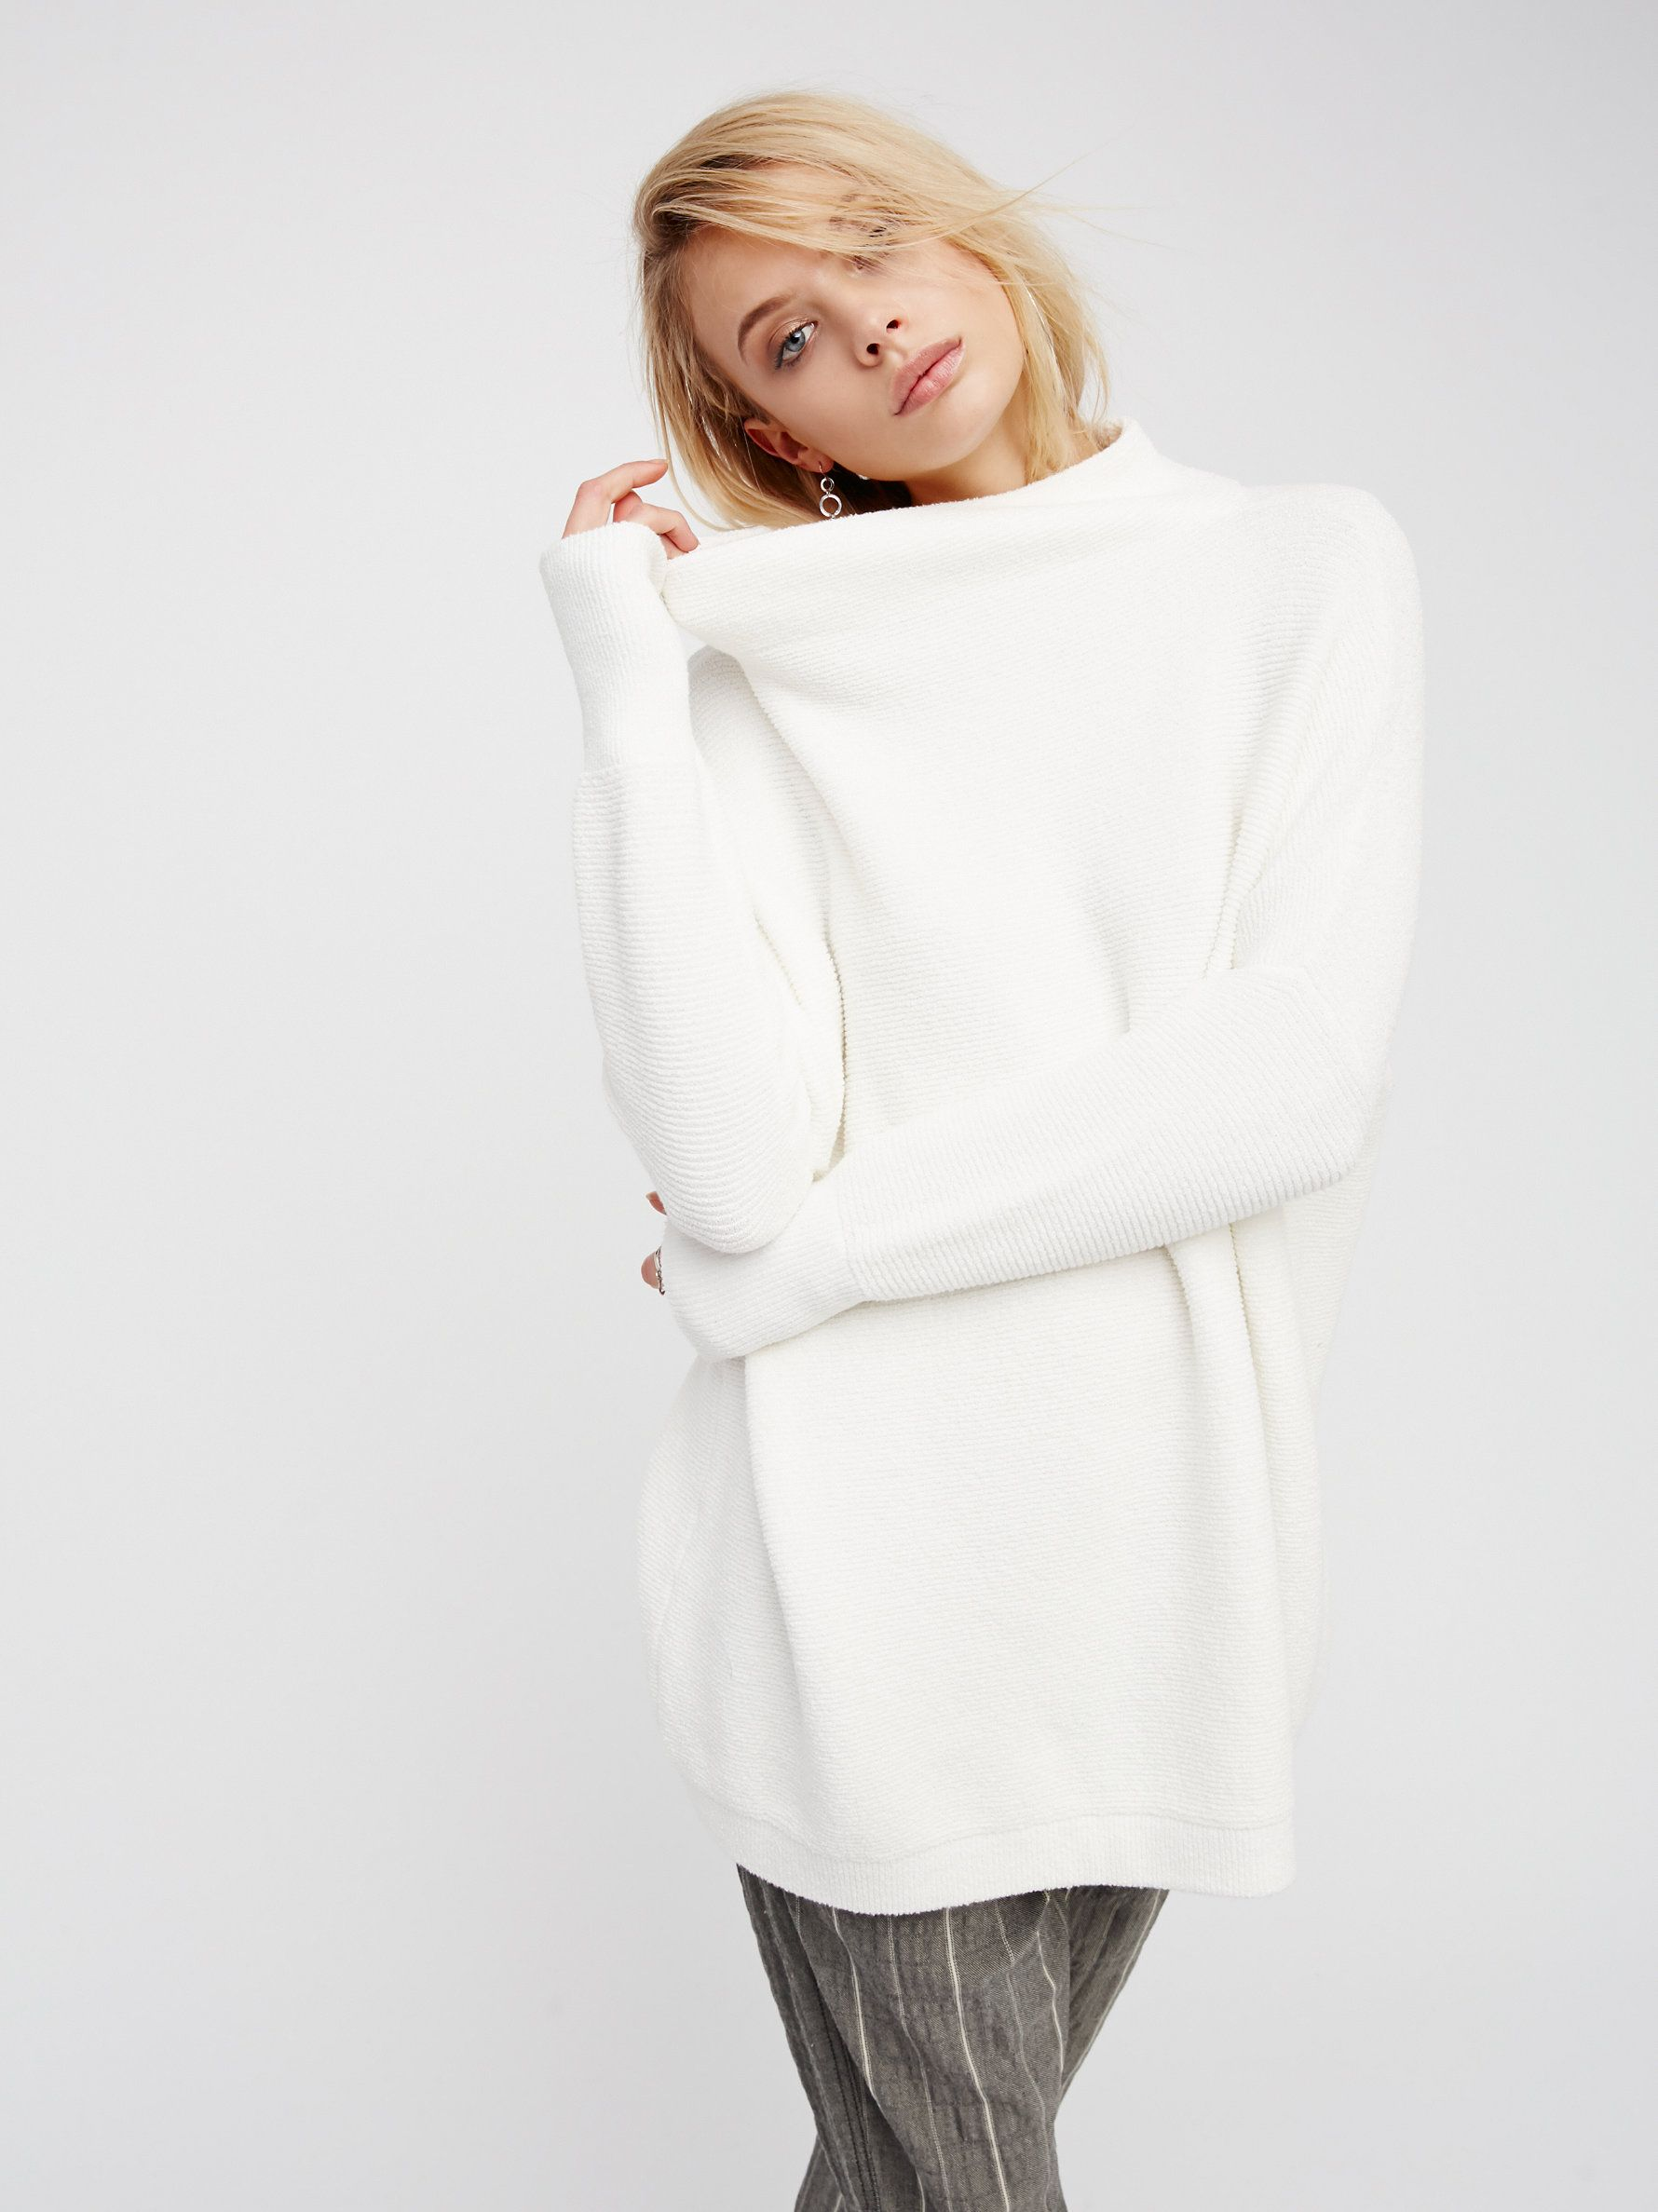 aa596ac4348 Ottoman Slouchy Tunic | Heavy knit ribbed sweater tunic in a slouchy,  oversized stretchy fit. Features a sleek mock neck.